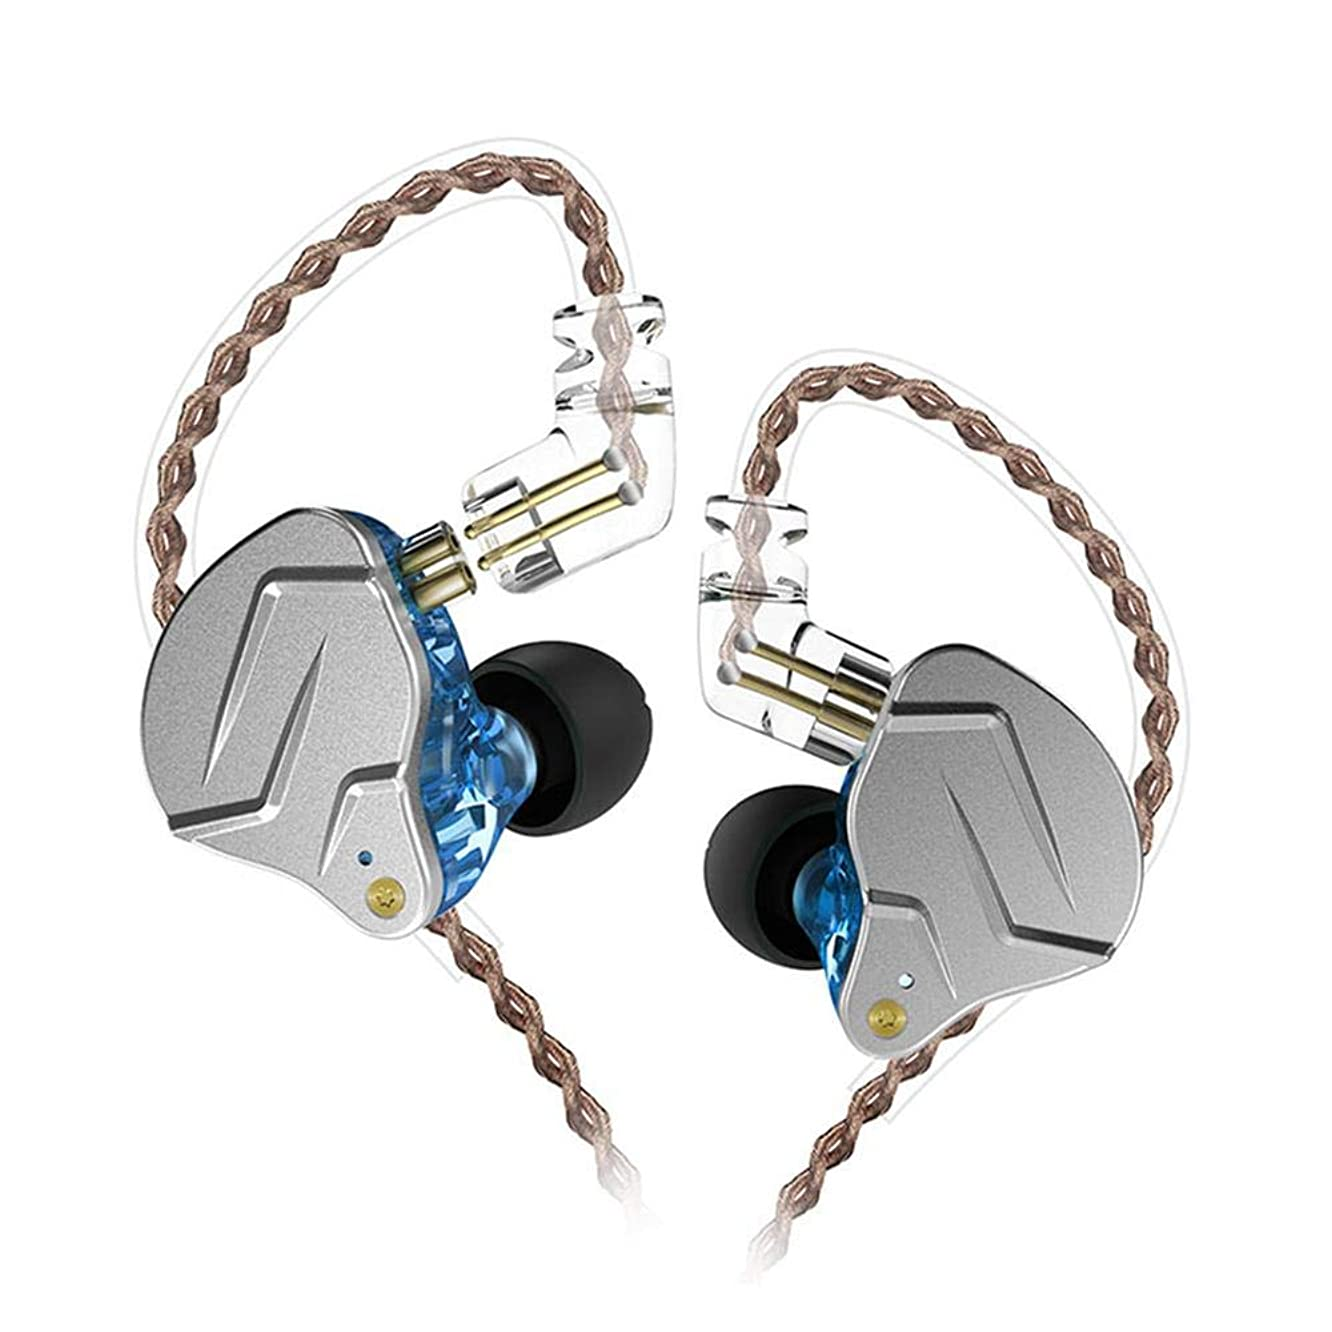 Goglor [2019 Newest] KZ ZSN Pro in-Ear Headset, Hybrid Driver HiFi Stereo Bass Dynamic Headphones Earphone with 2 Pins Detachable Cable, Noise Isolating in Ear Monitors(Blue, No Mic)